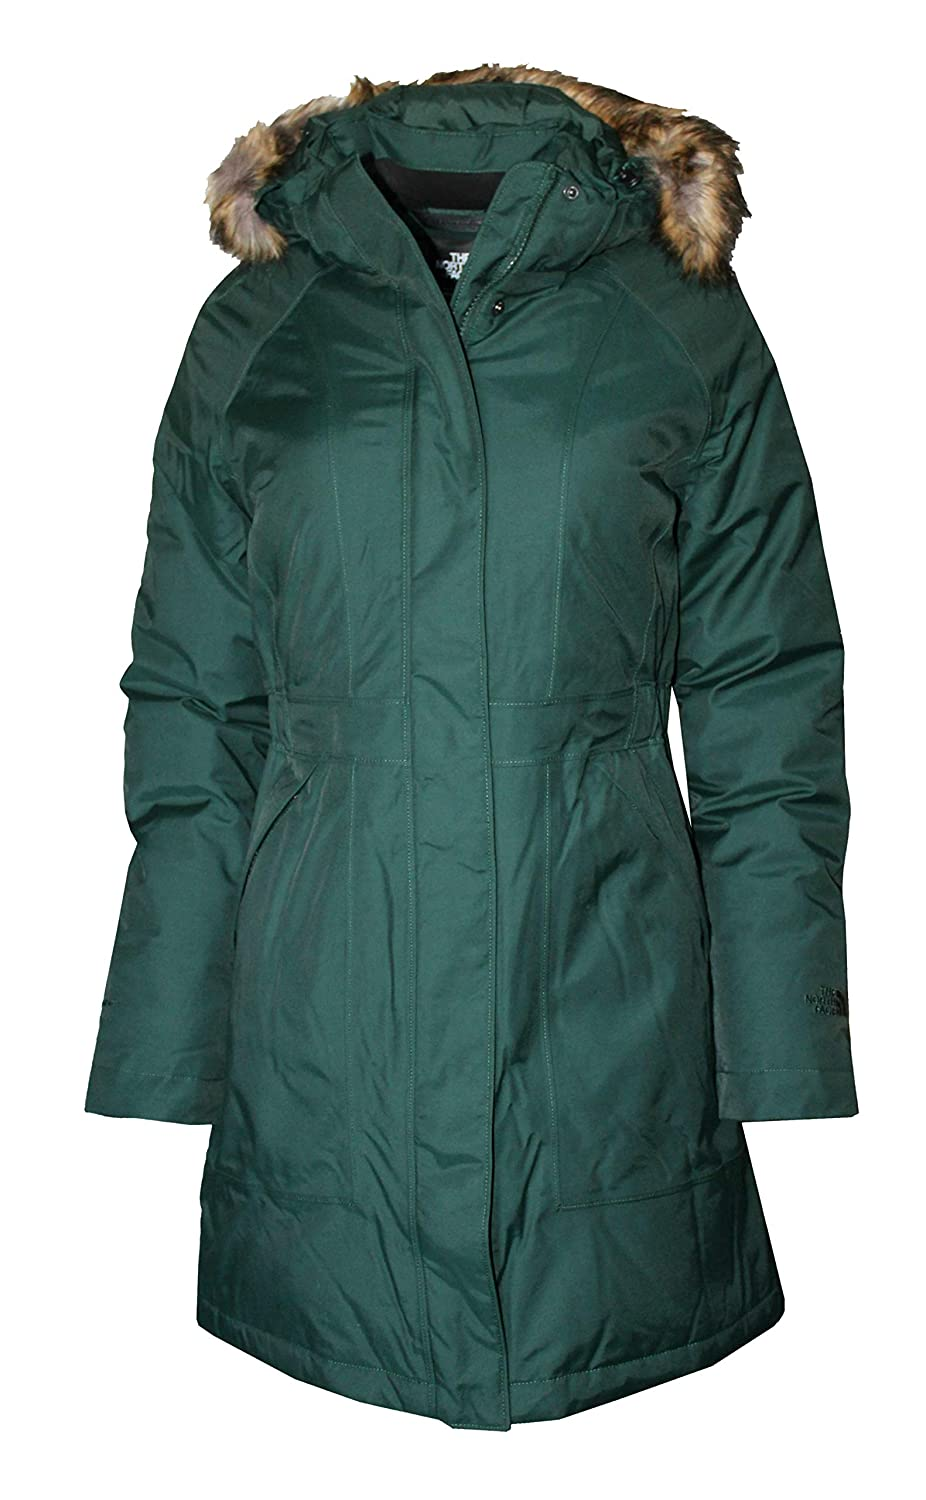 15cd07495c411 Amazon.com  The North Face Women Arctic Parka Winter Down Jacket ...